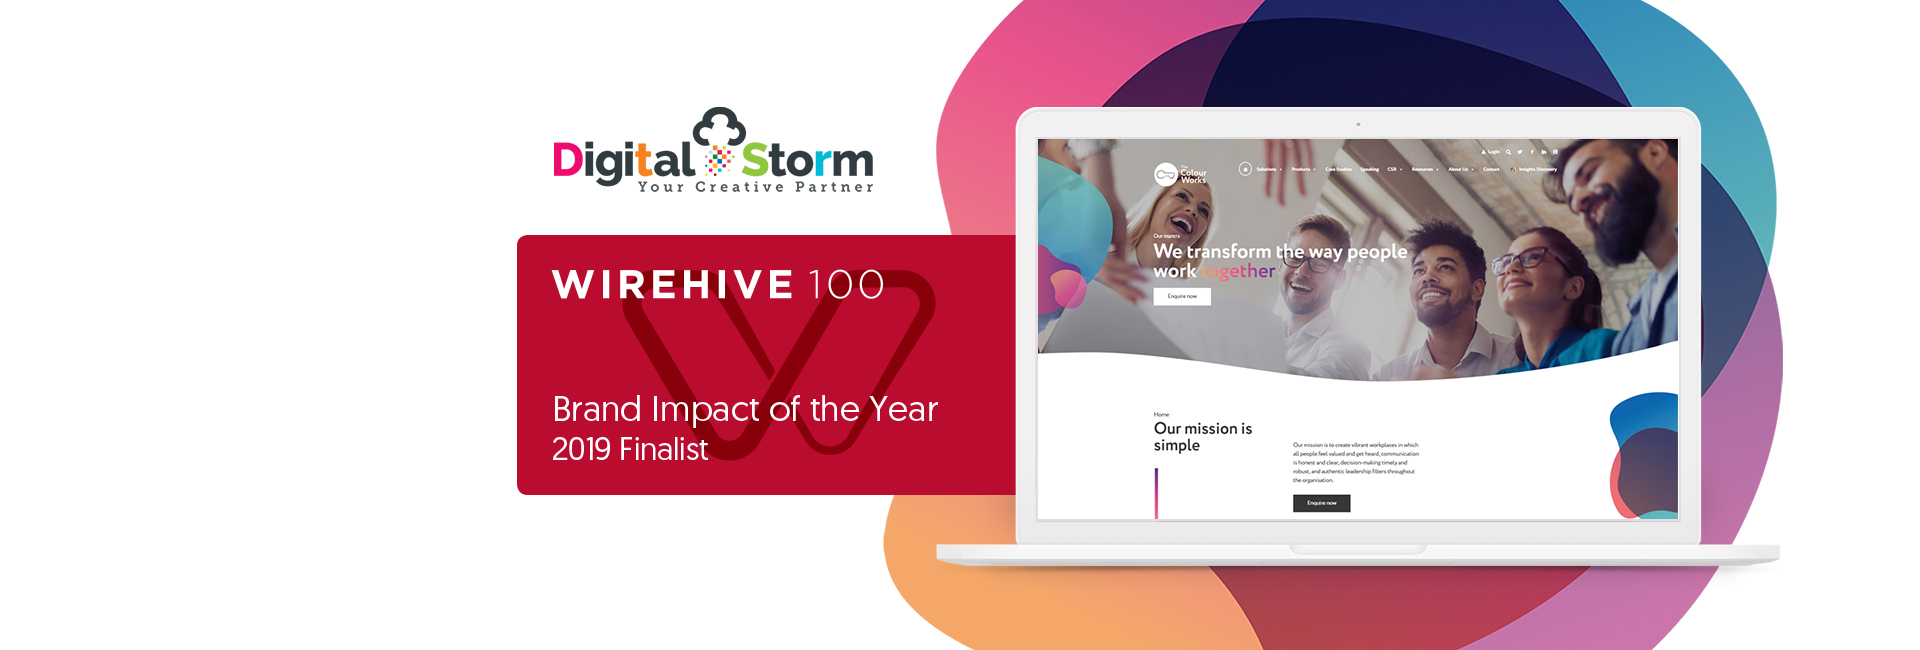 Digital Storm make finalists for Wirehive's Brand Impact of the Year 2019